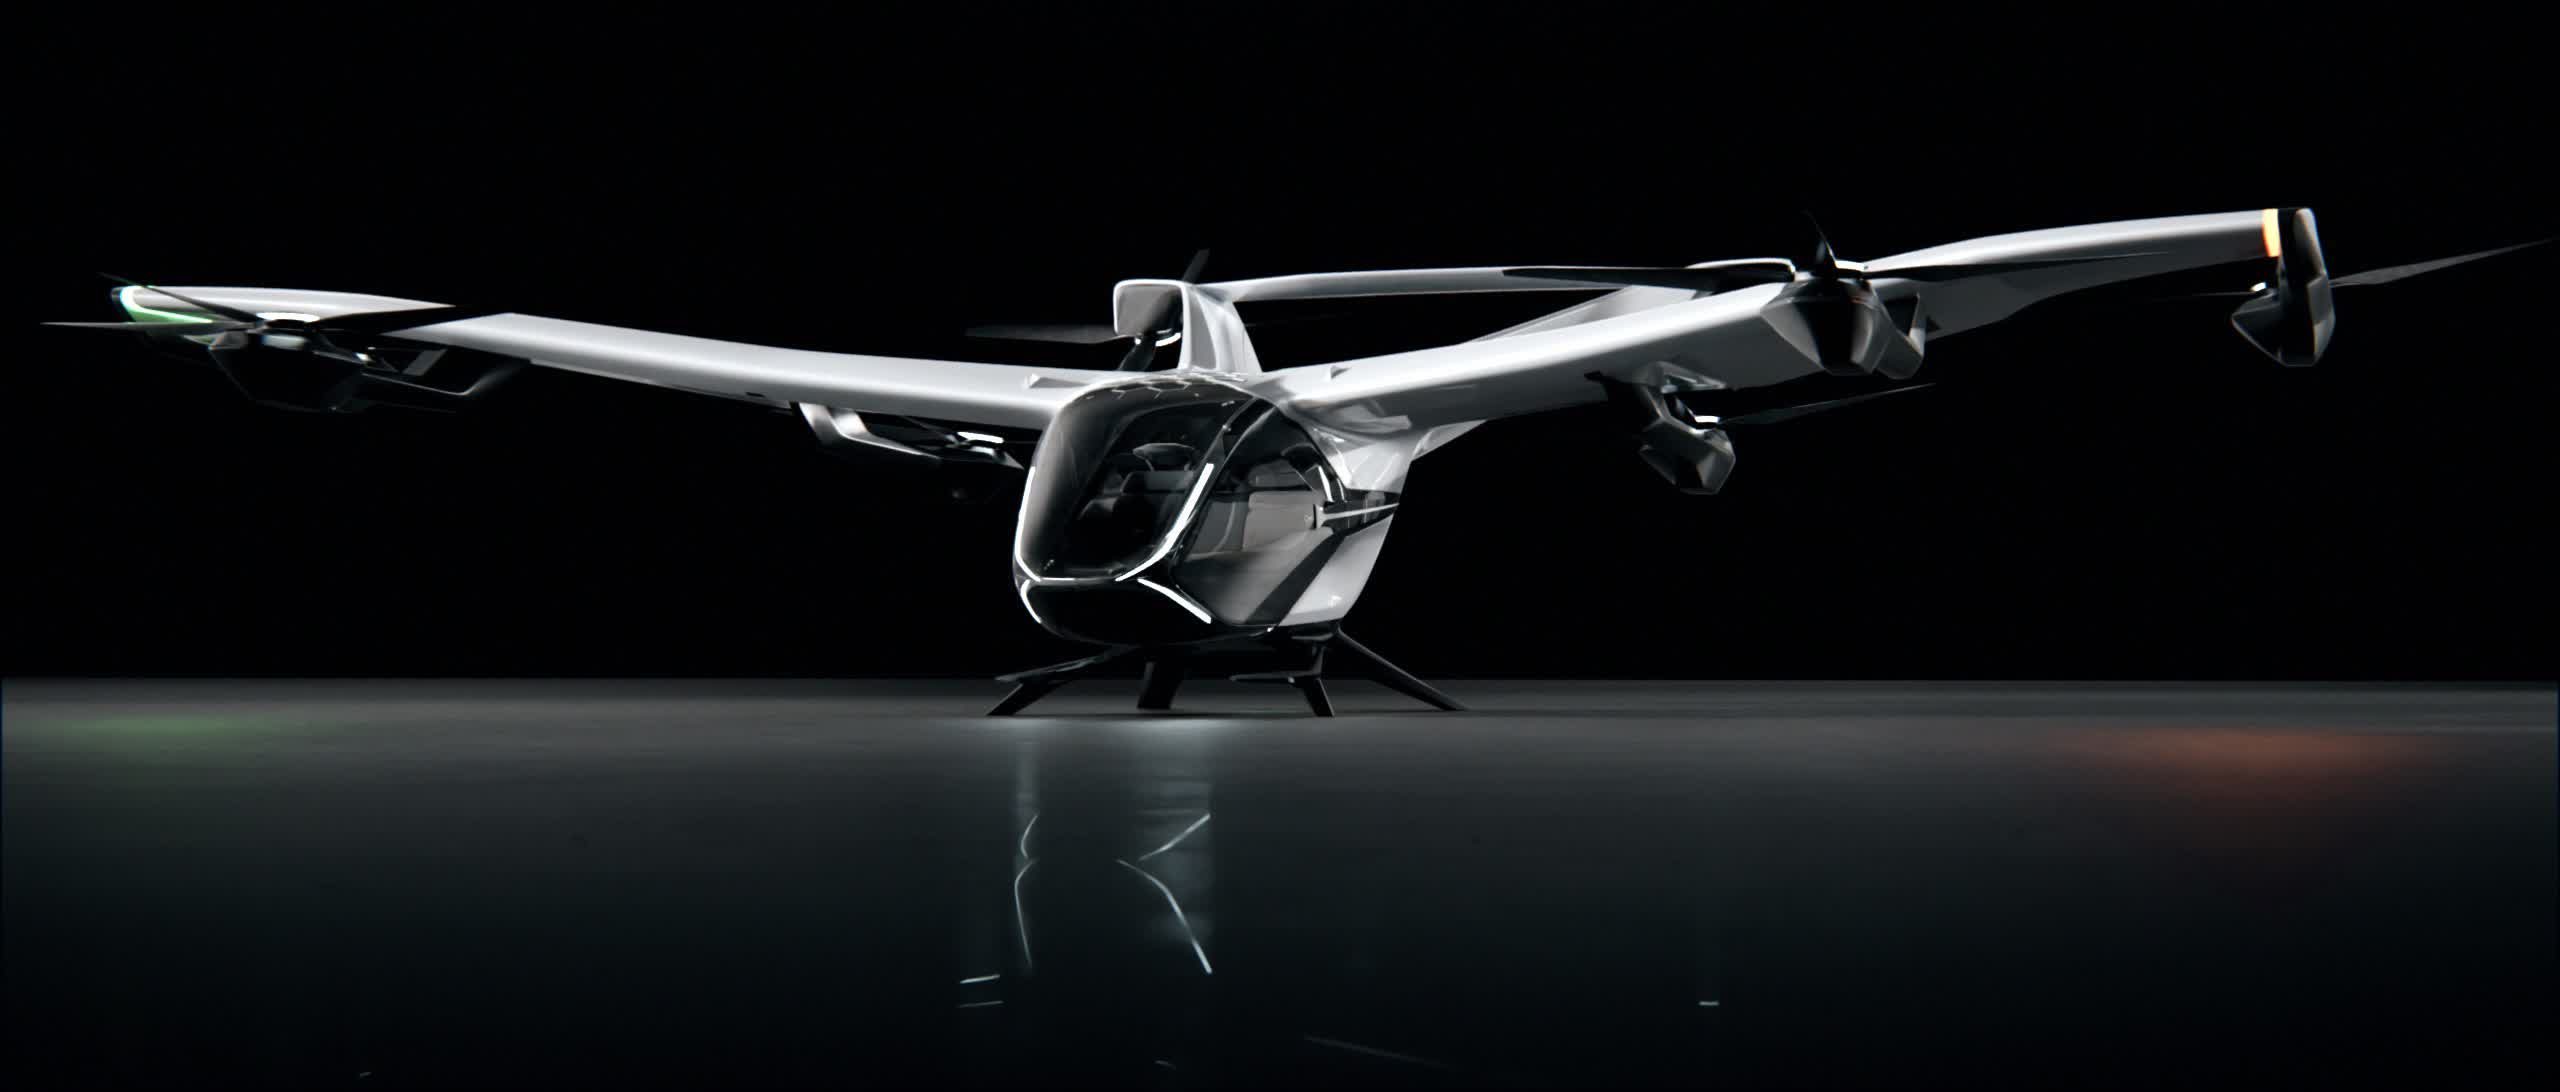 Airbus unveils the next generation of its flying taxi